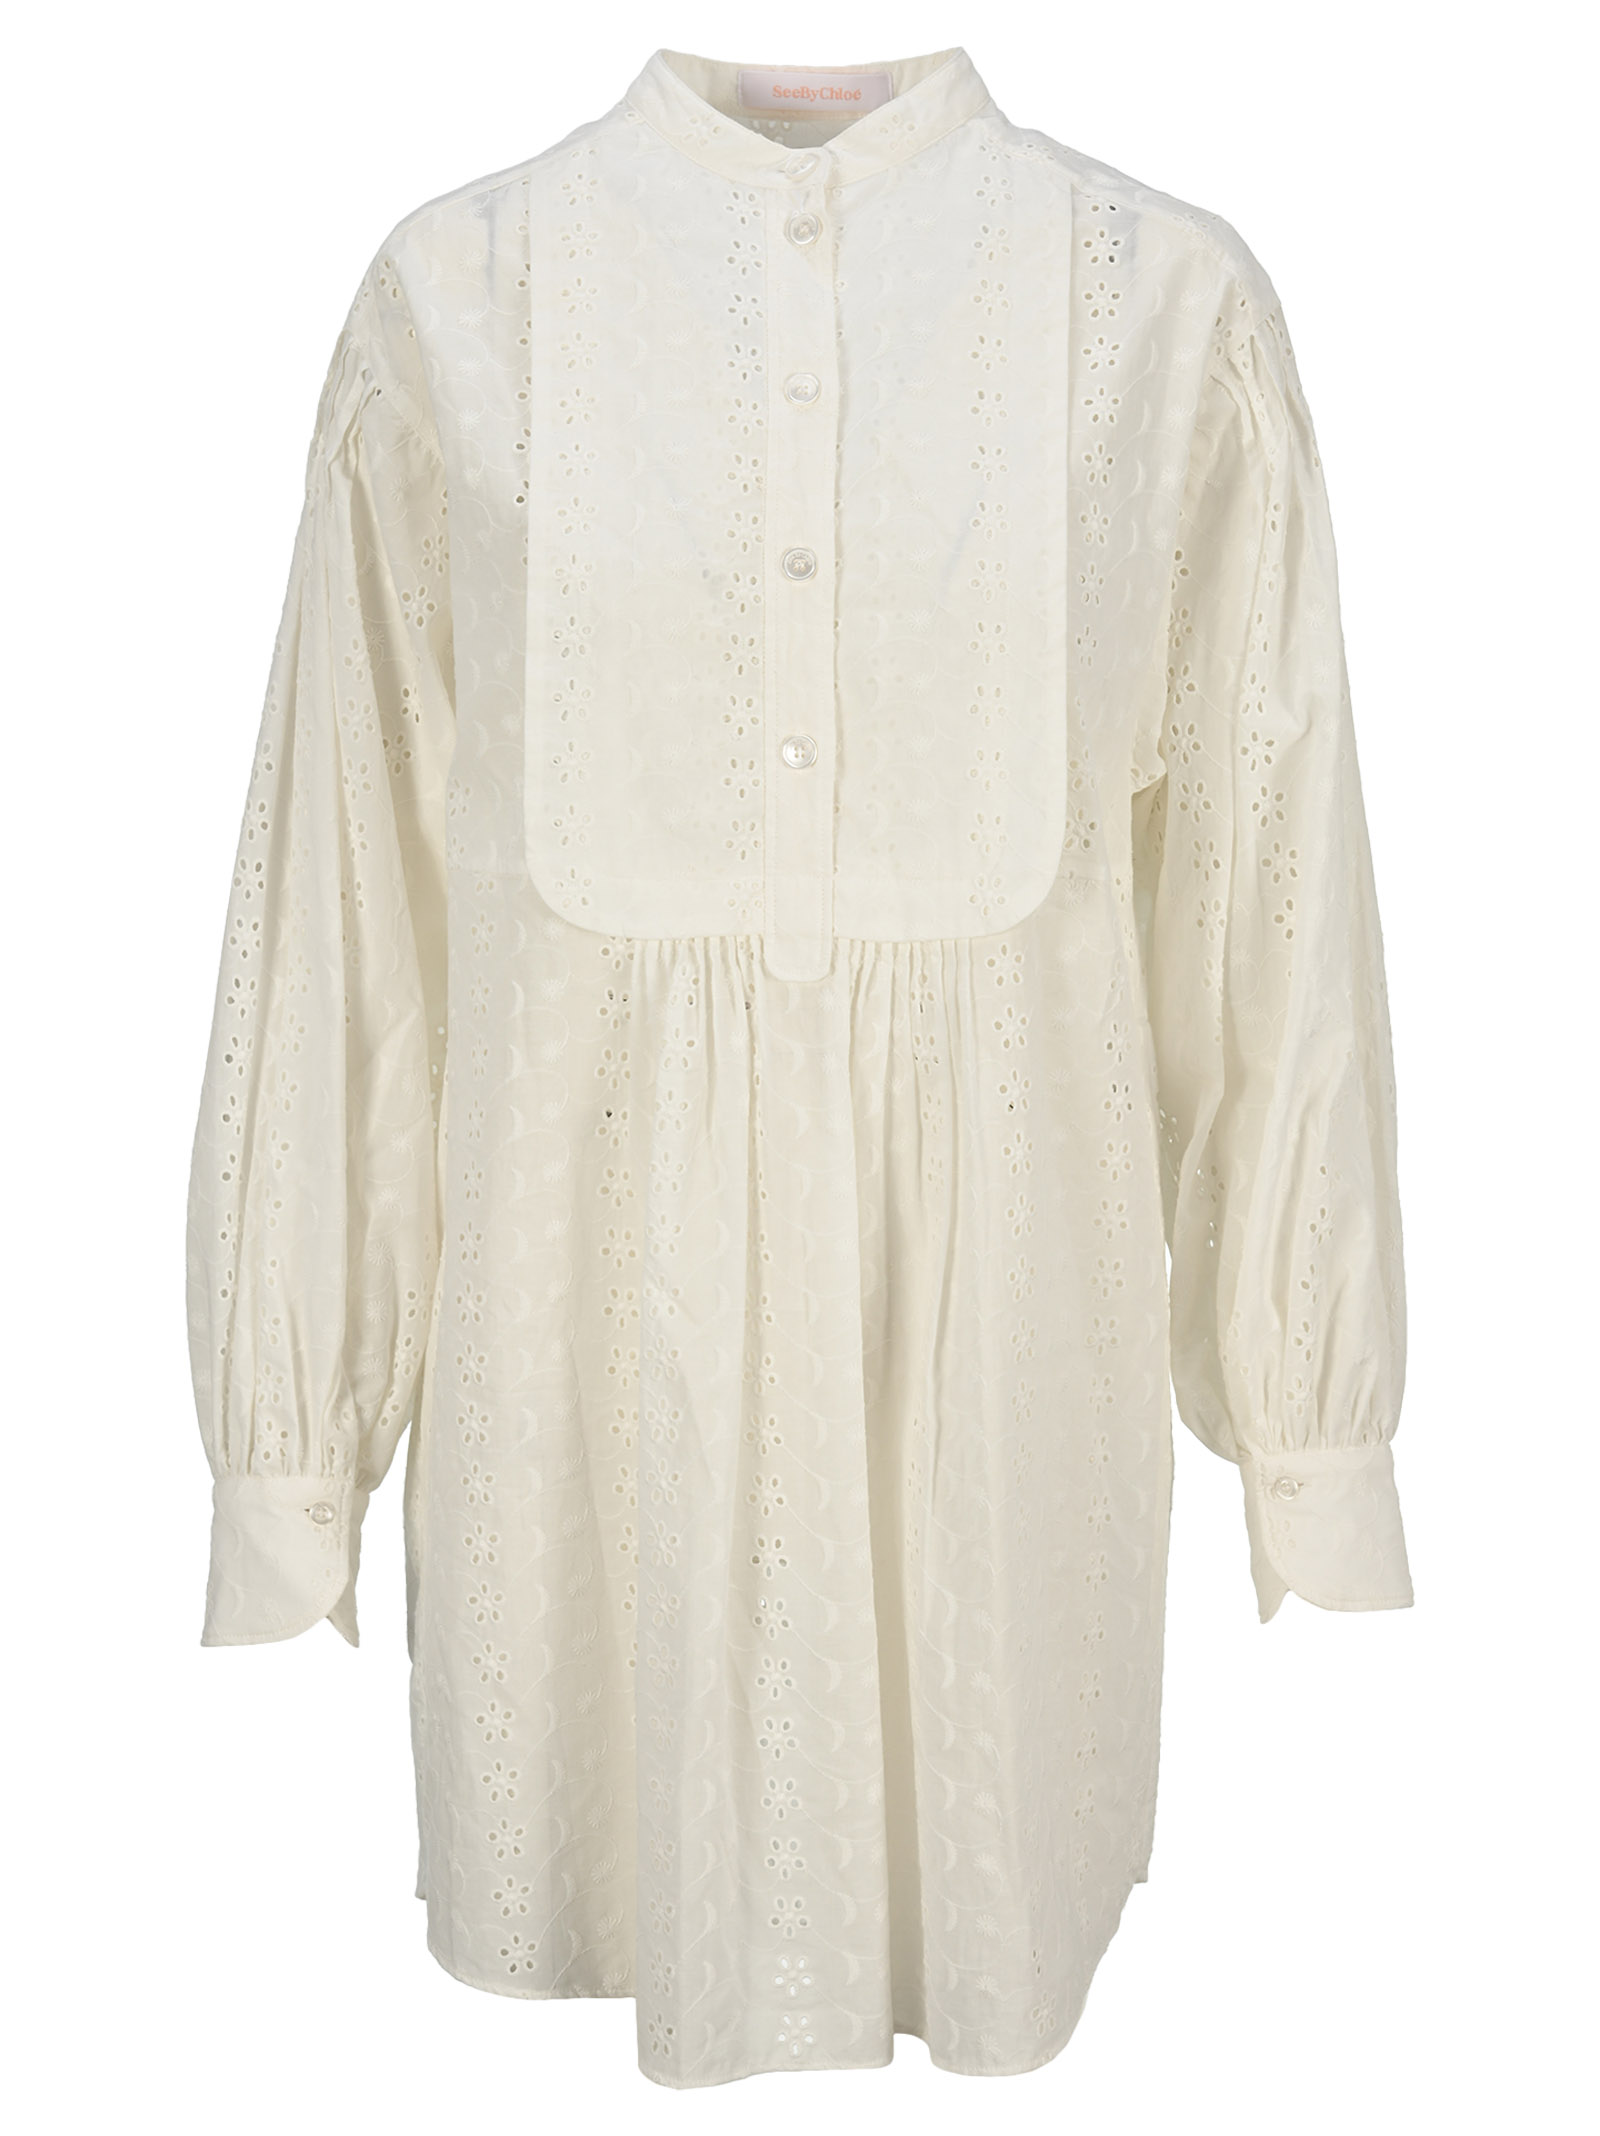 See By Chloé Dresses BRODERIE ANGLAISE SHIRT DRESS